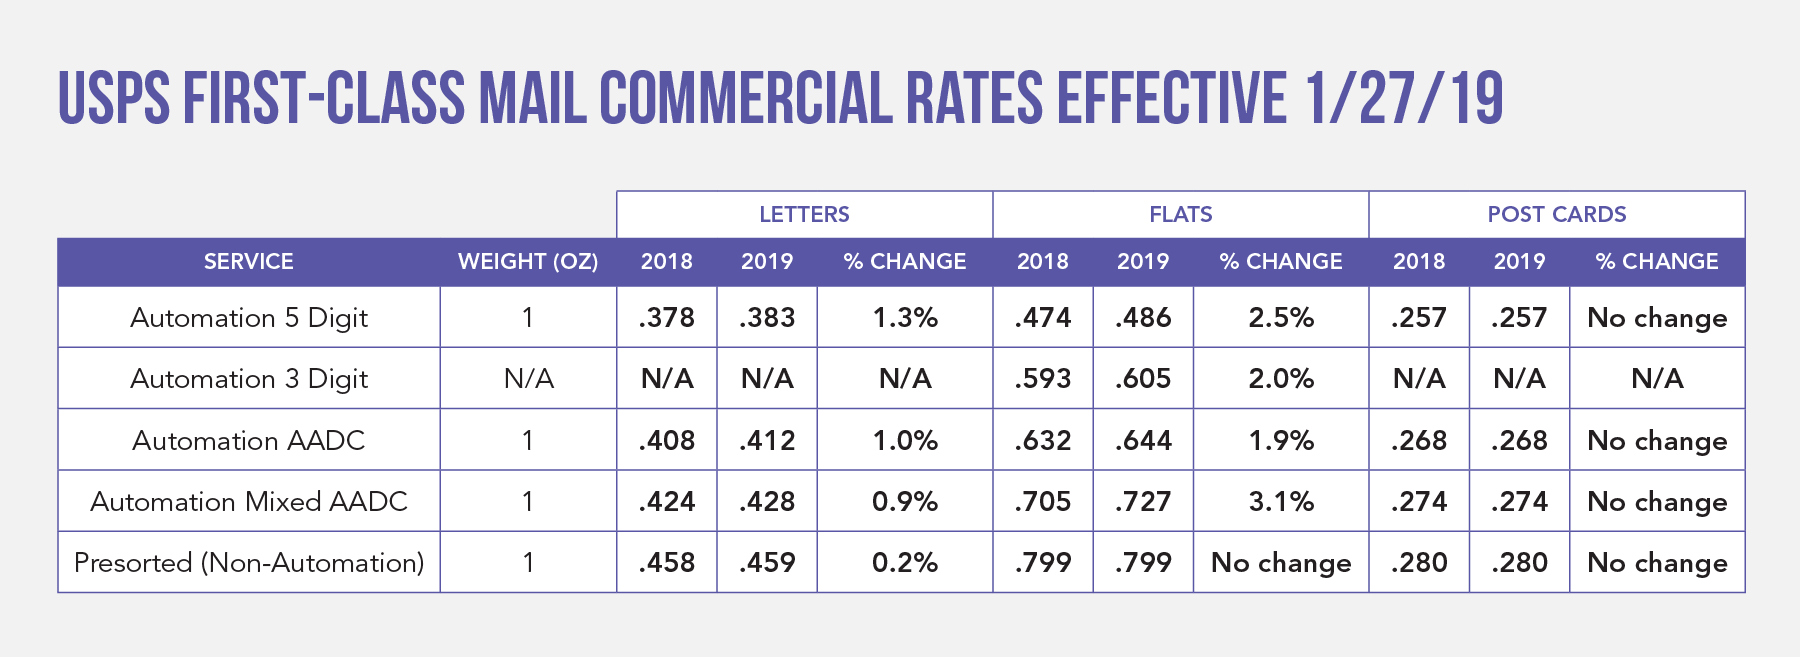 USPS Commercial First-Class Mail Rates Effective January 27, 2019